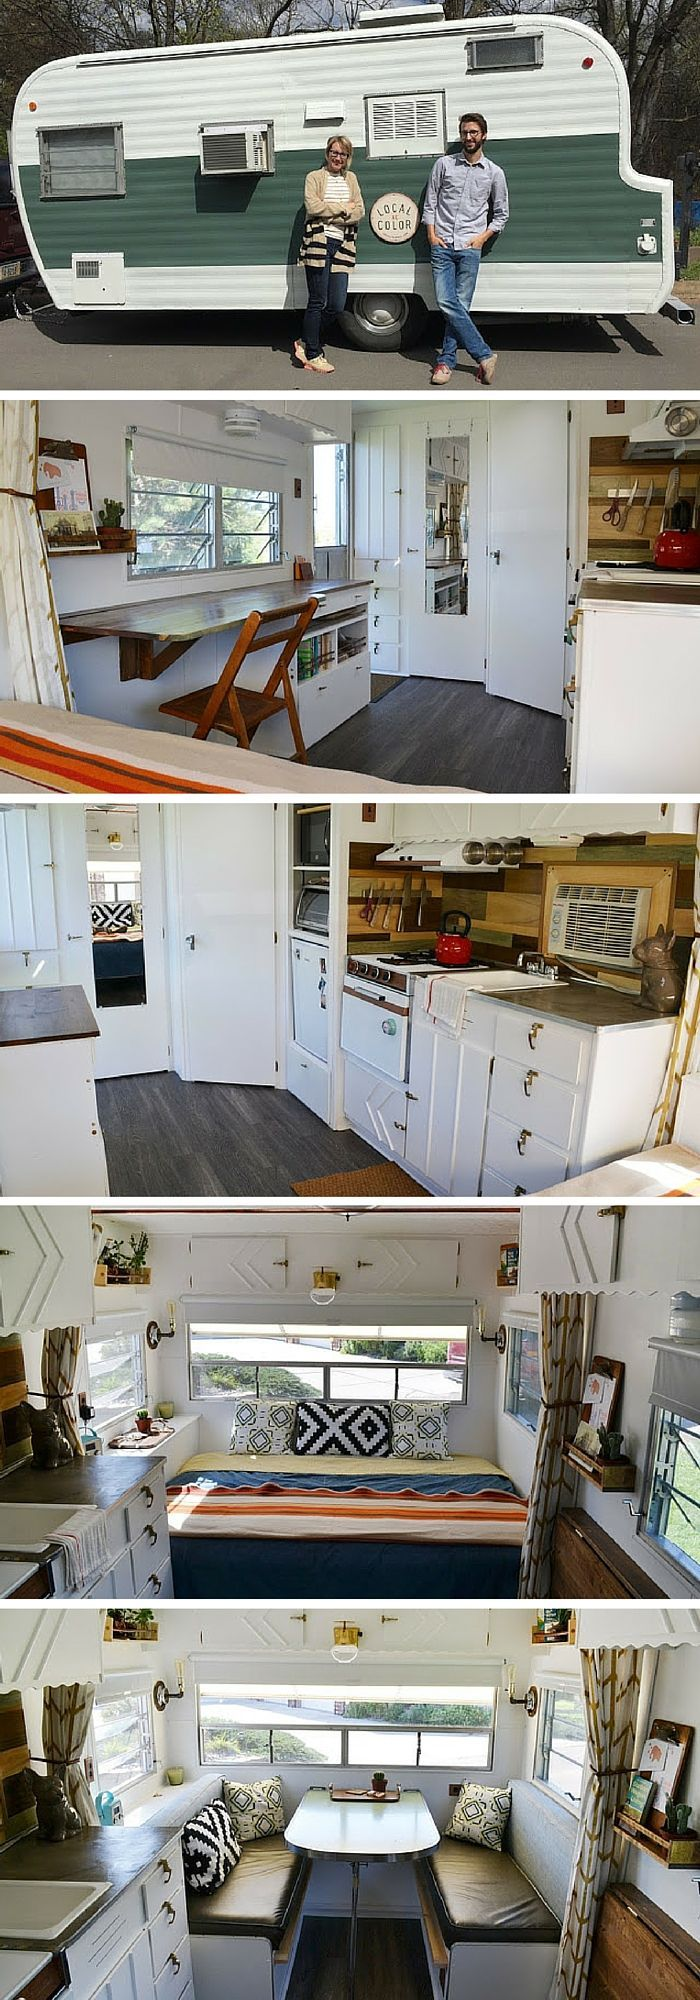 A Couple From Nebraska Bought This 1960s Trailer And Remodelled It Into Home To Travel